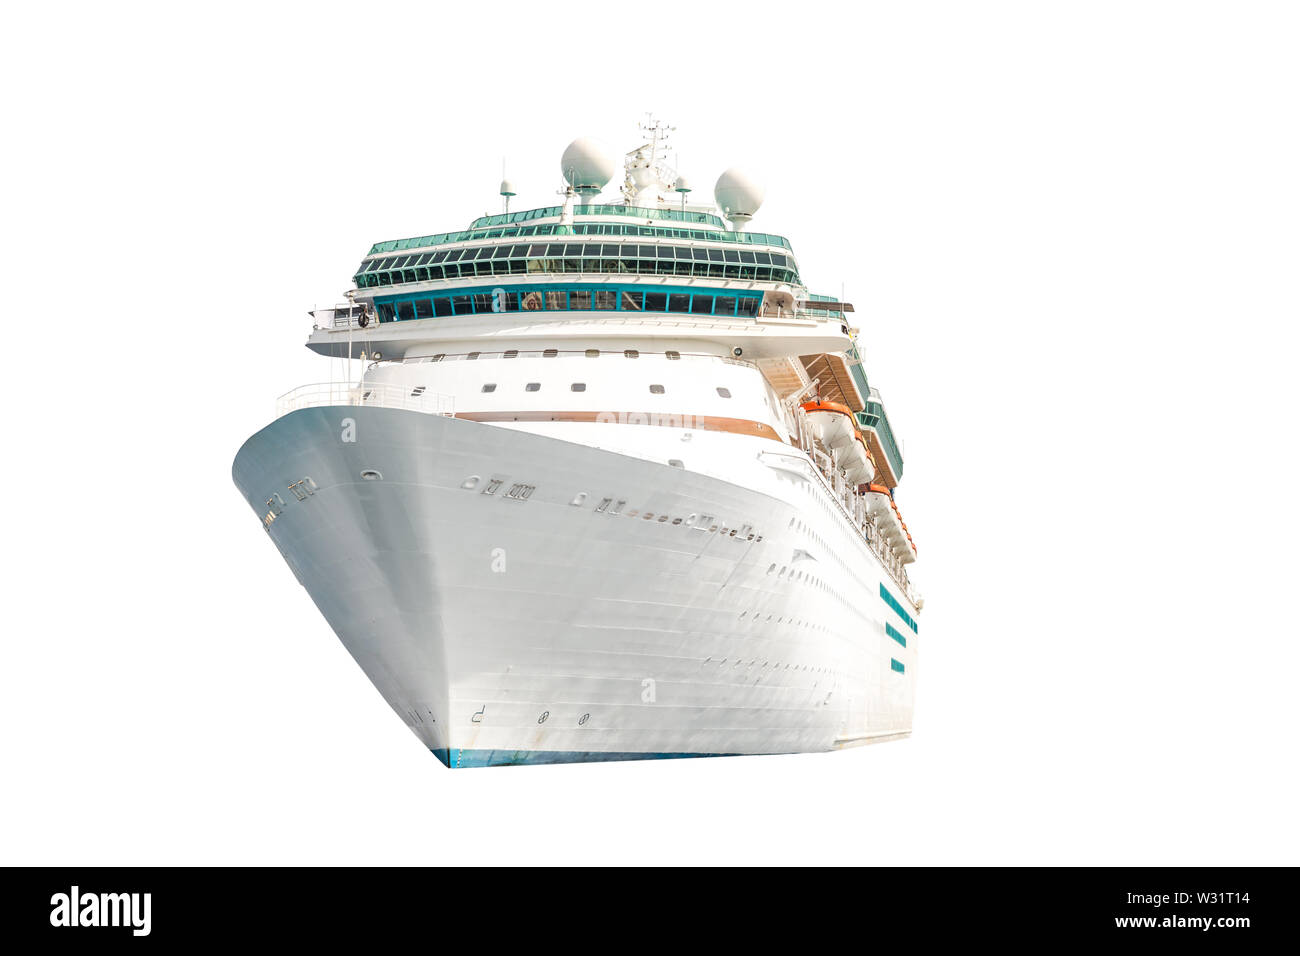 Cruise Ship Cut Out Stock Images & Pictures - Alamy